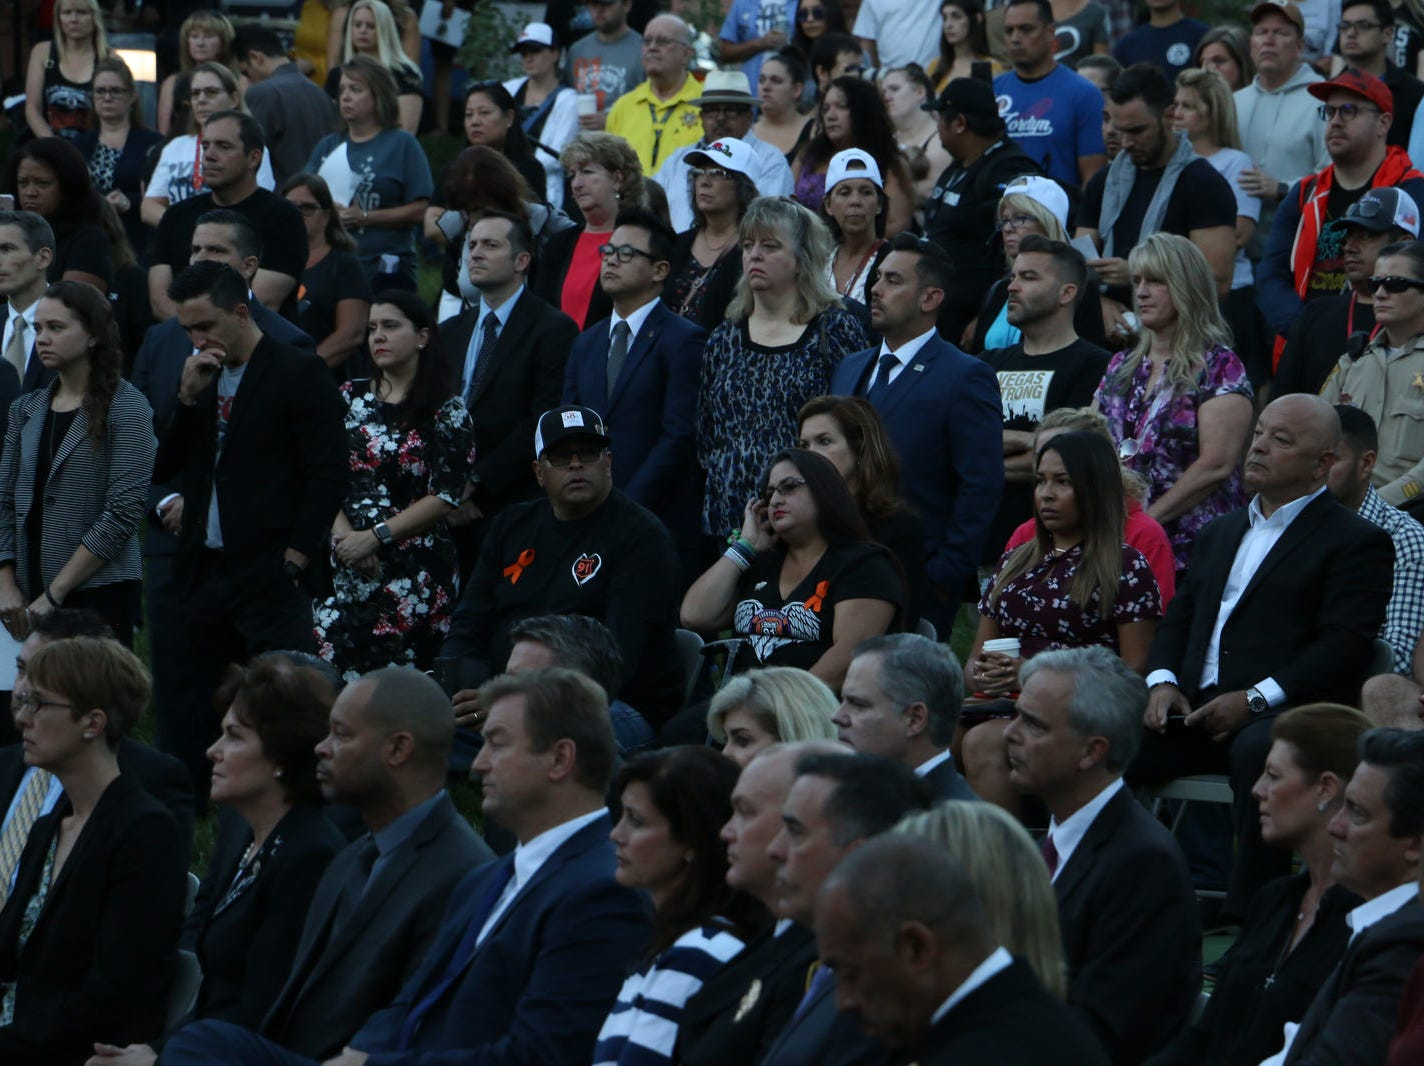 People gather for the 1 October Sunrise Remembrance at the Clark County Government Center Amphitheater in Las Vegas on Oct. 1, 2018.  The ceremony marked the one year anniversary of the mass shooting in Las Vegas.